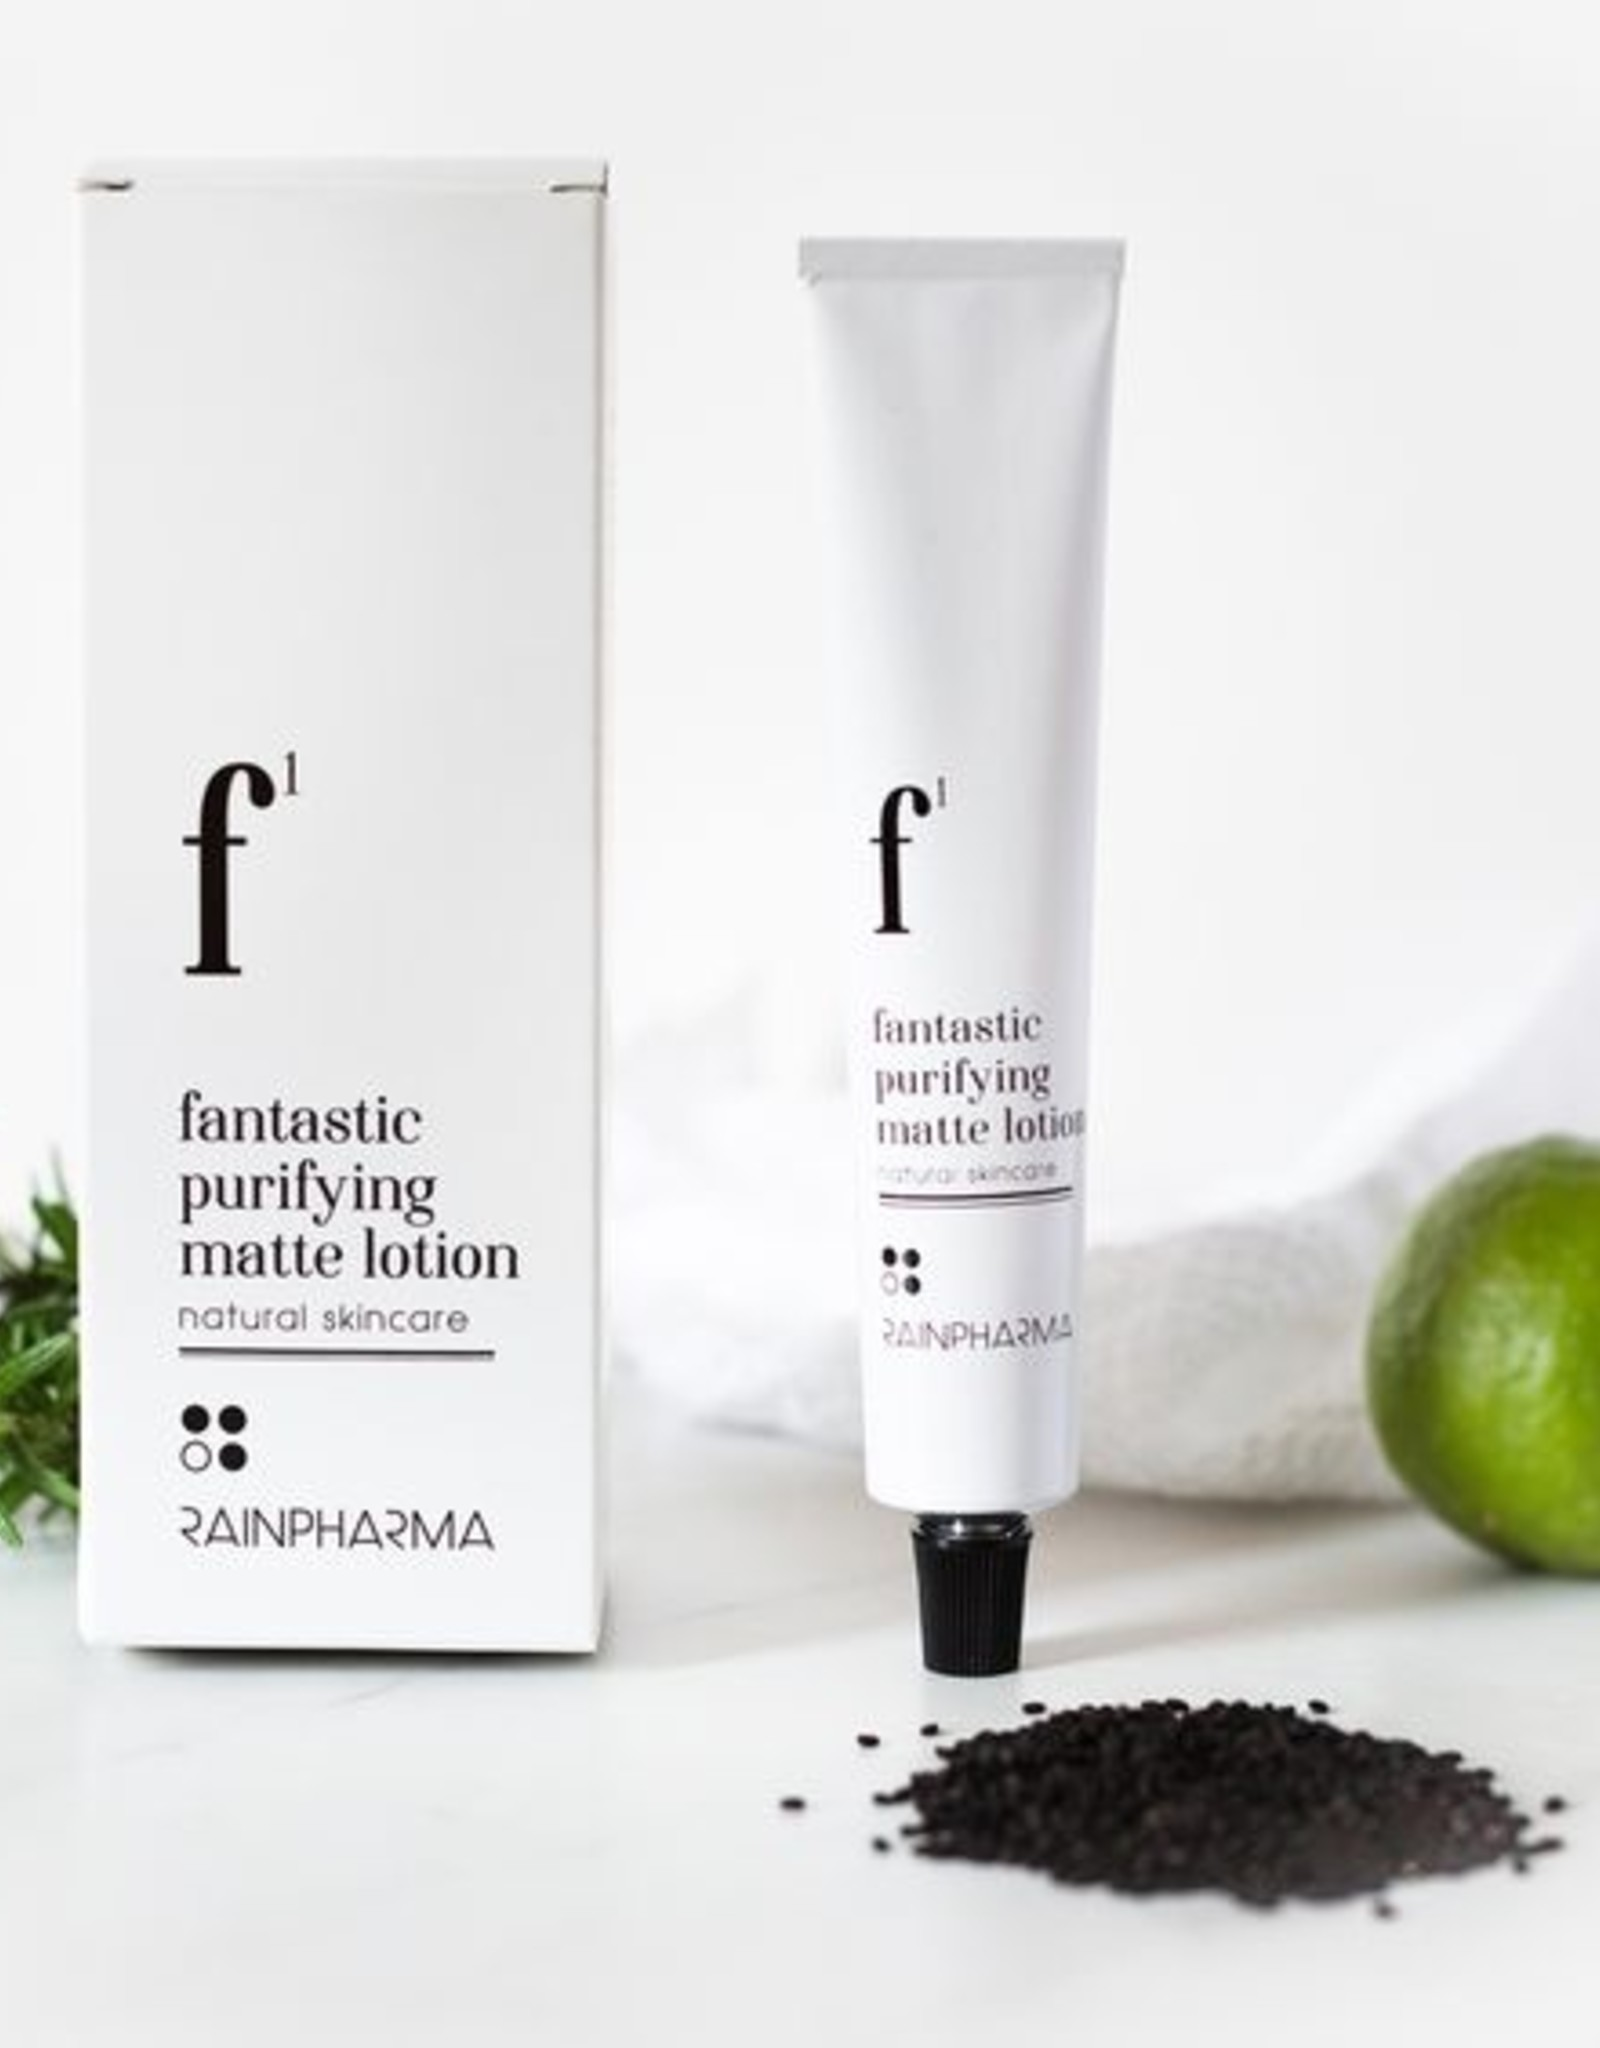 RainPharma Rainpharma - F1 - Fantastic Purifying Matte Lotion 50ml